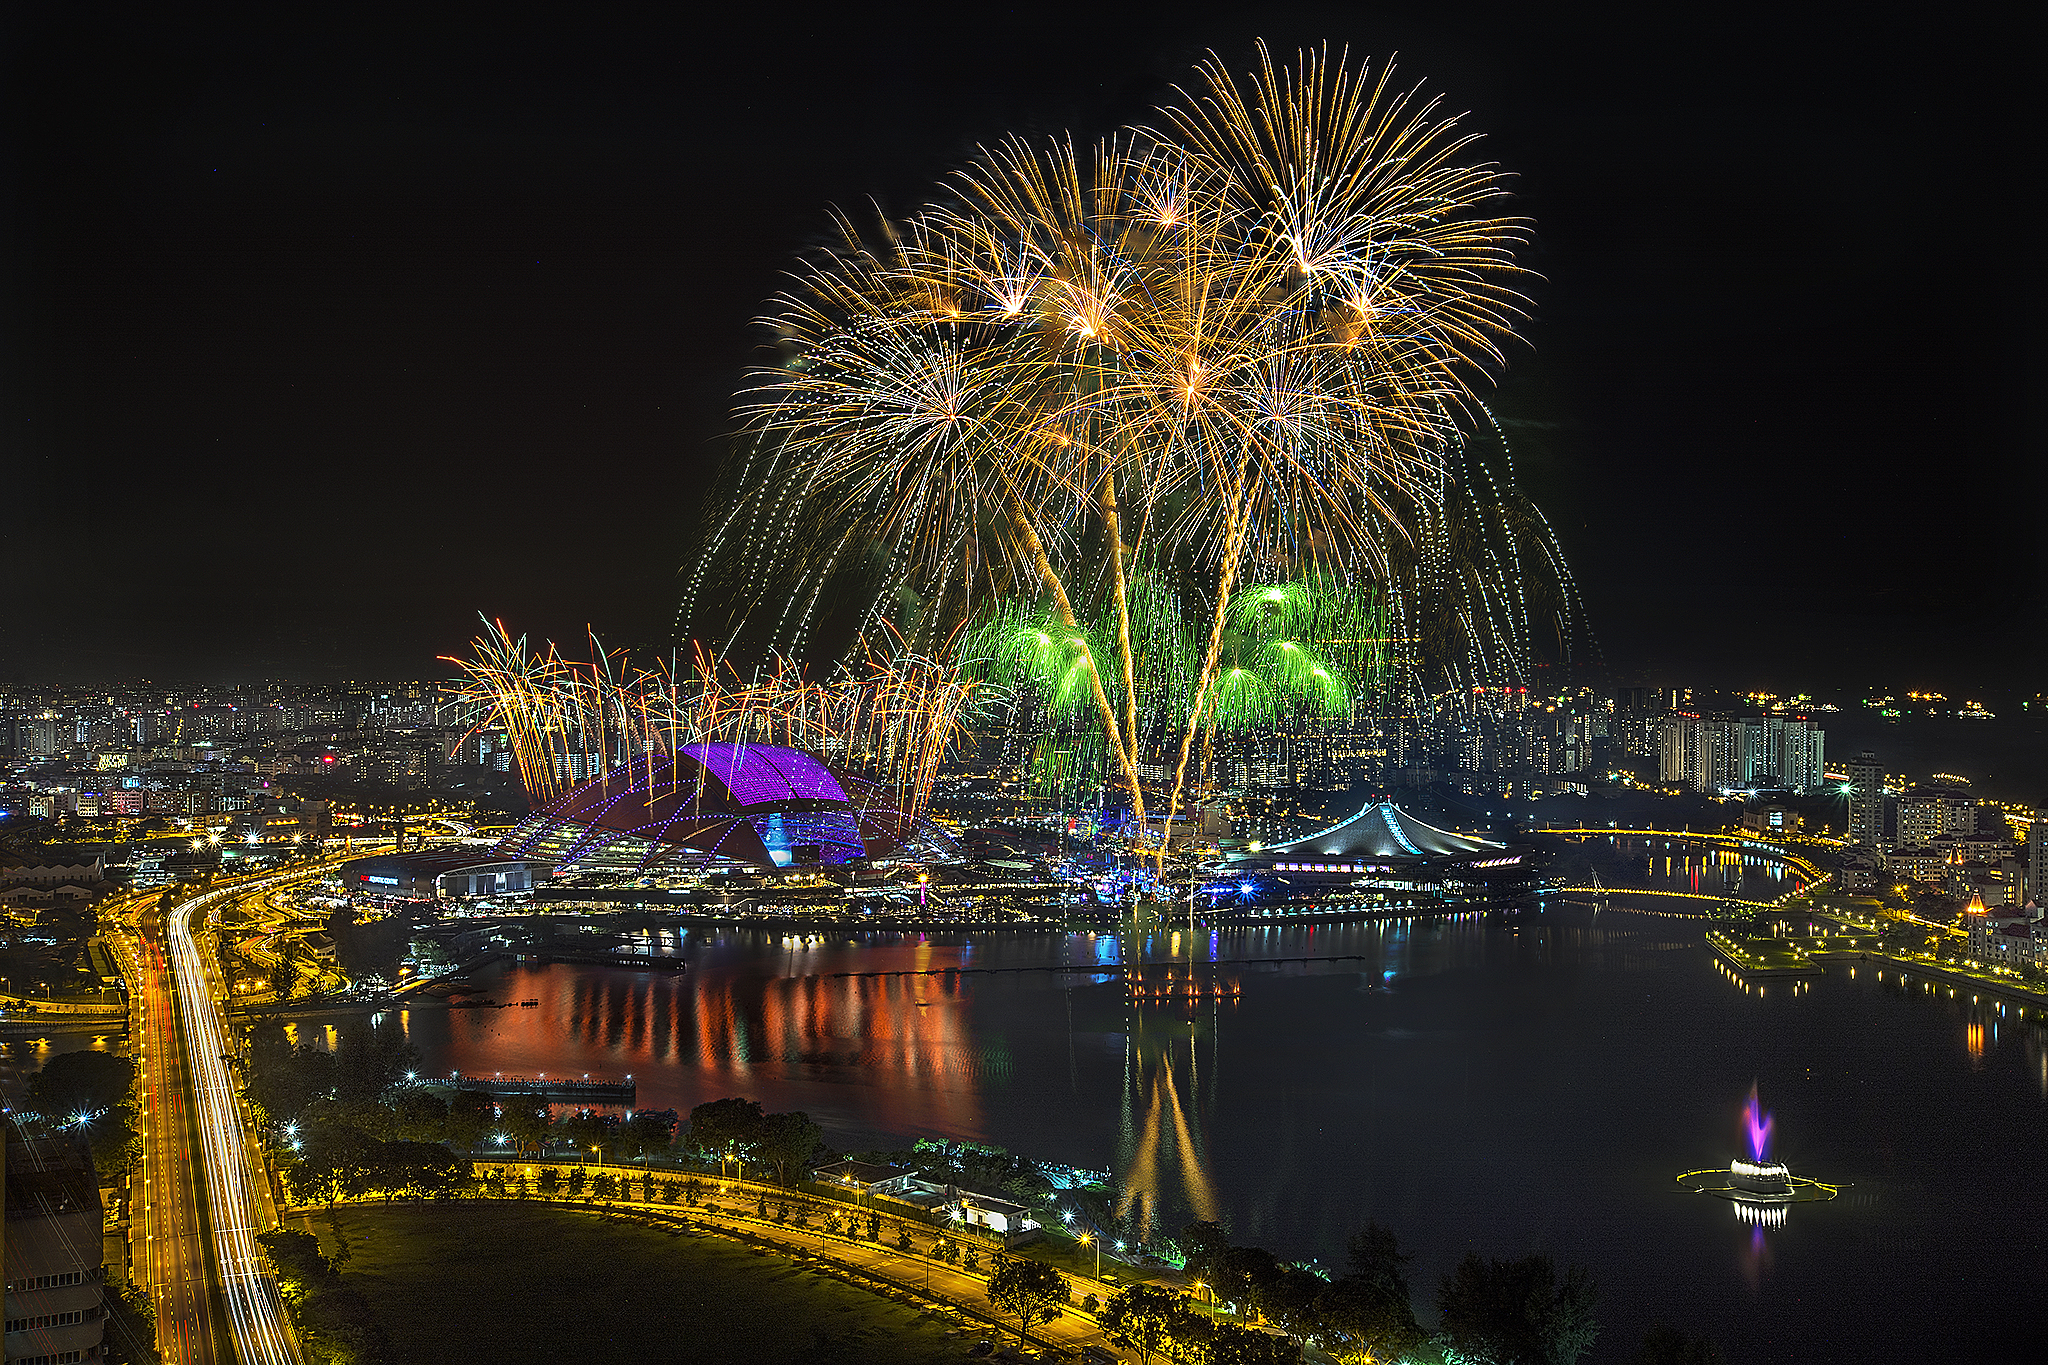 Closing Ceremony Sea Games 2015 Fireworks Sea Games Closing Fireworks